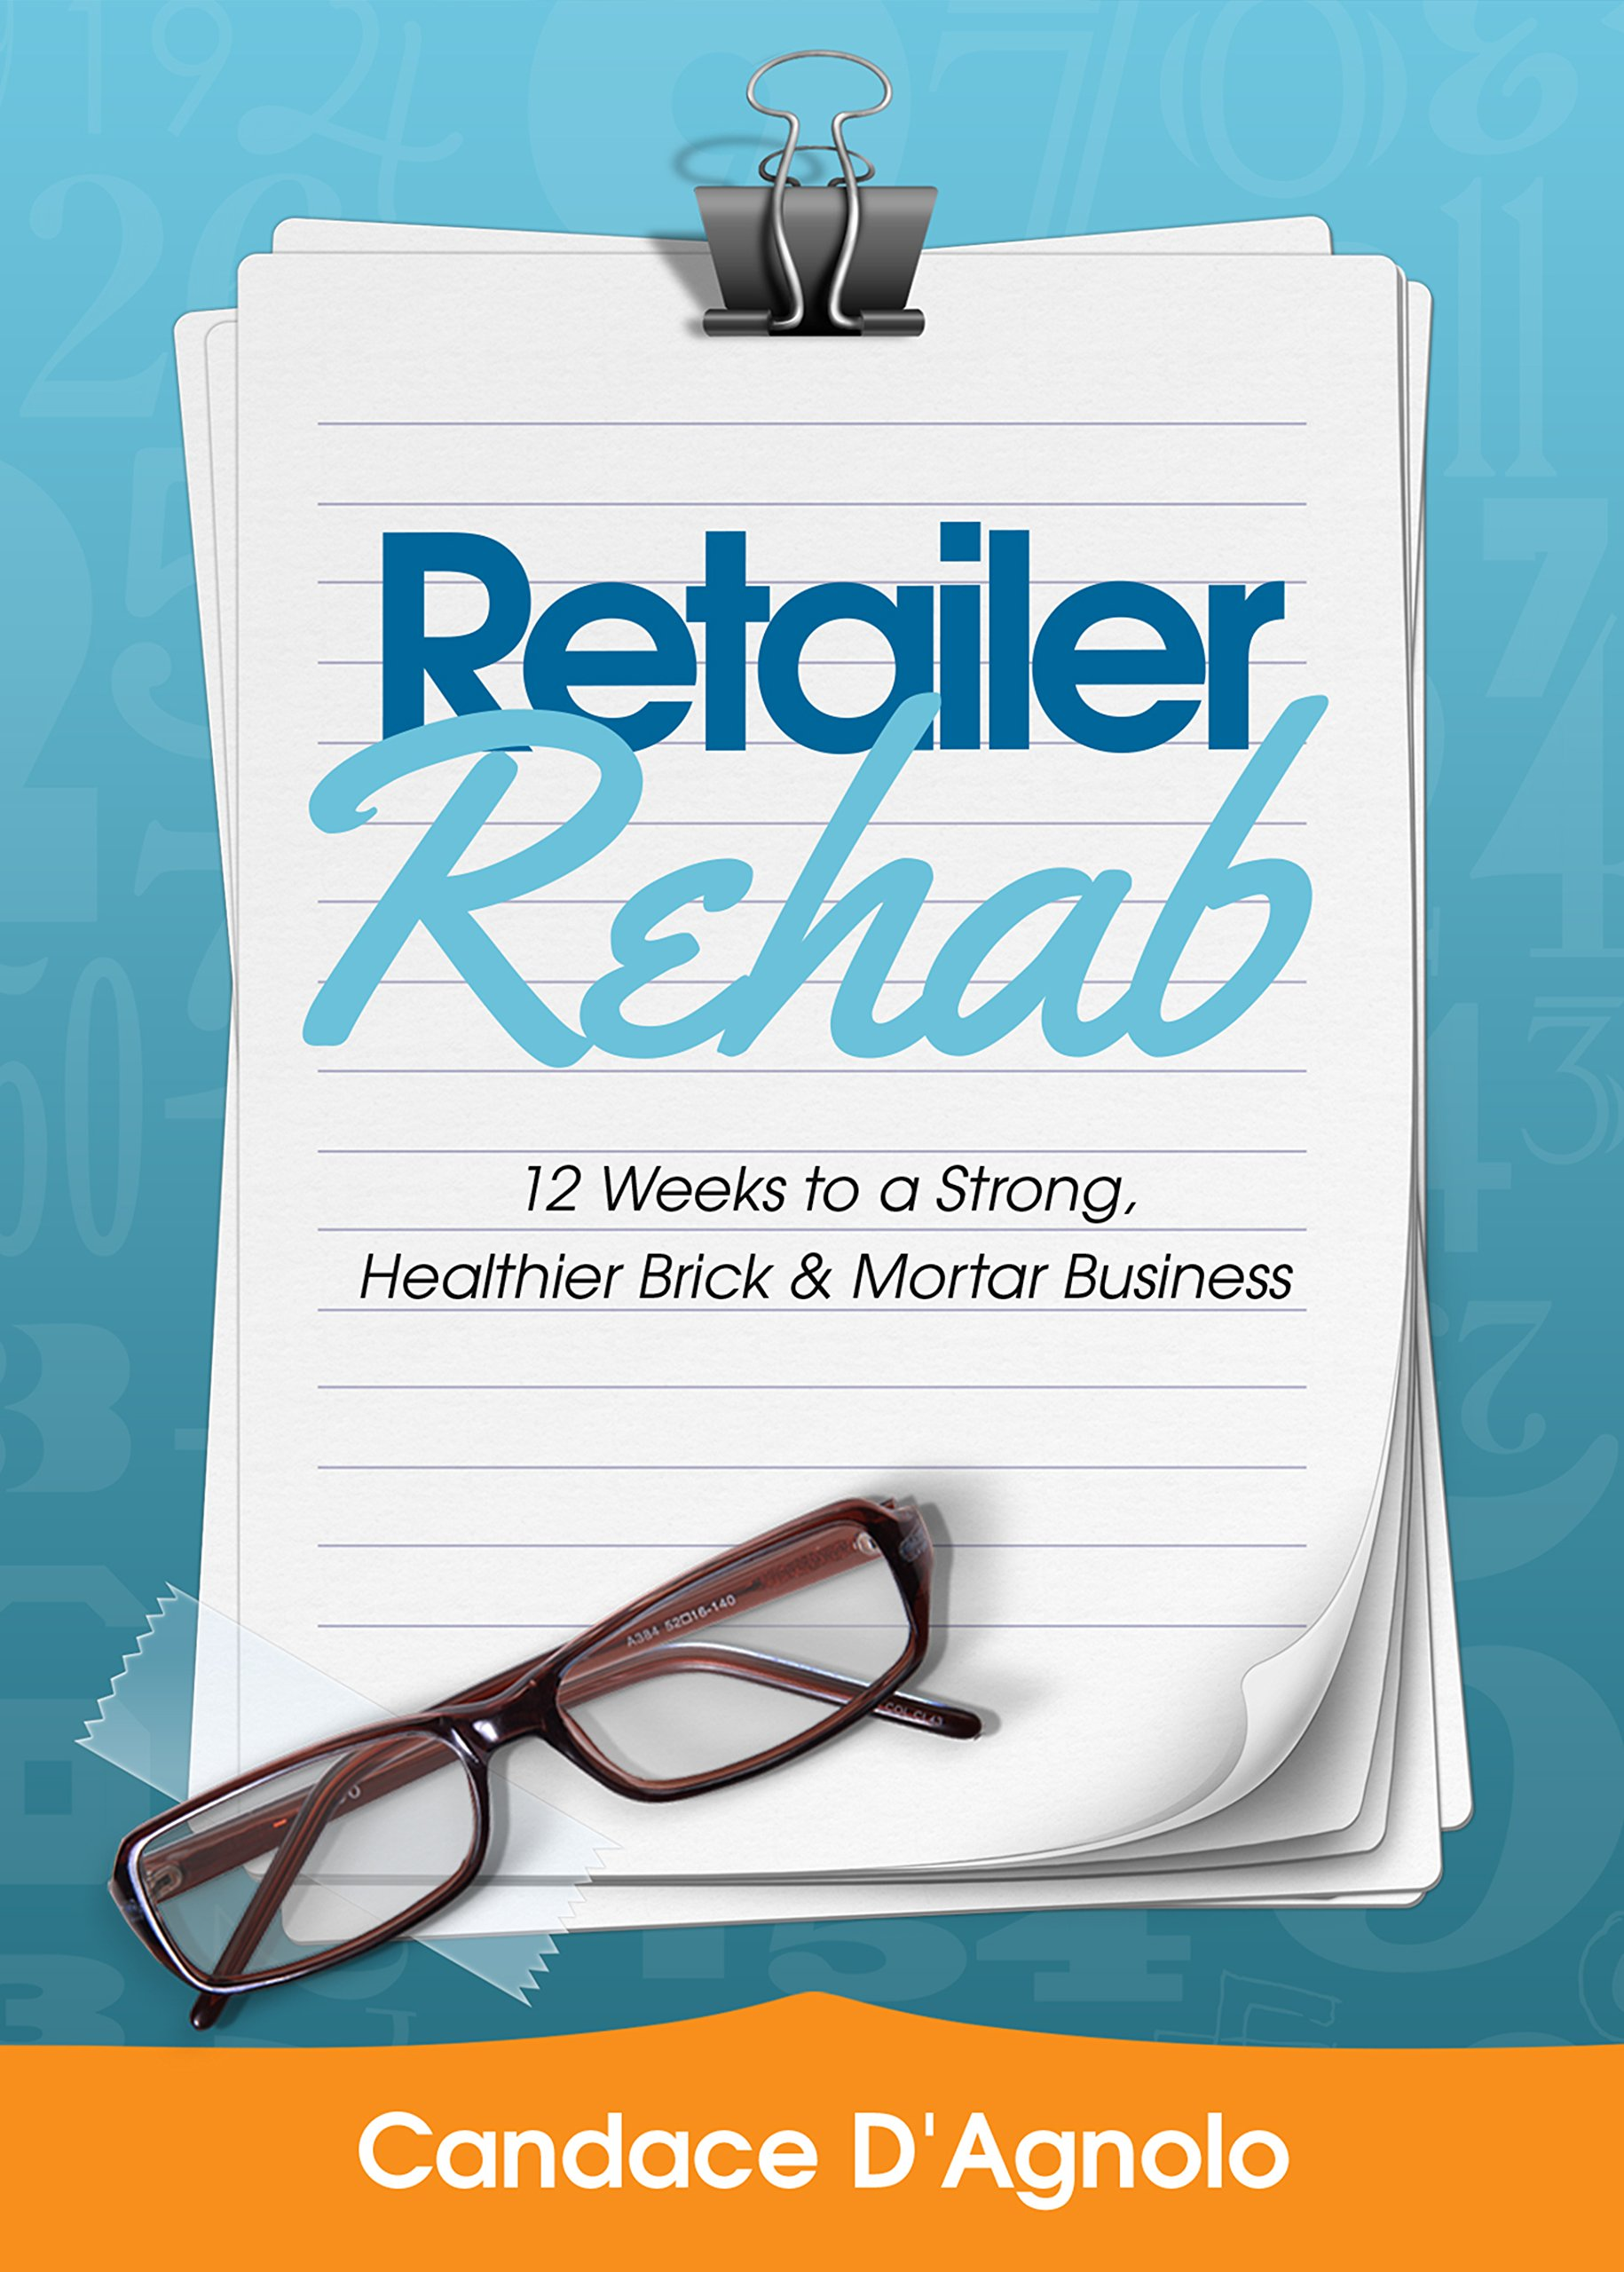 Retailer Rehab: 12 Weeks to a Stronger, Healthier Brick & Mortar Business